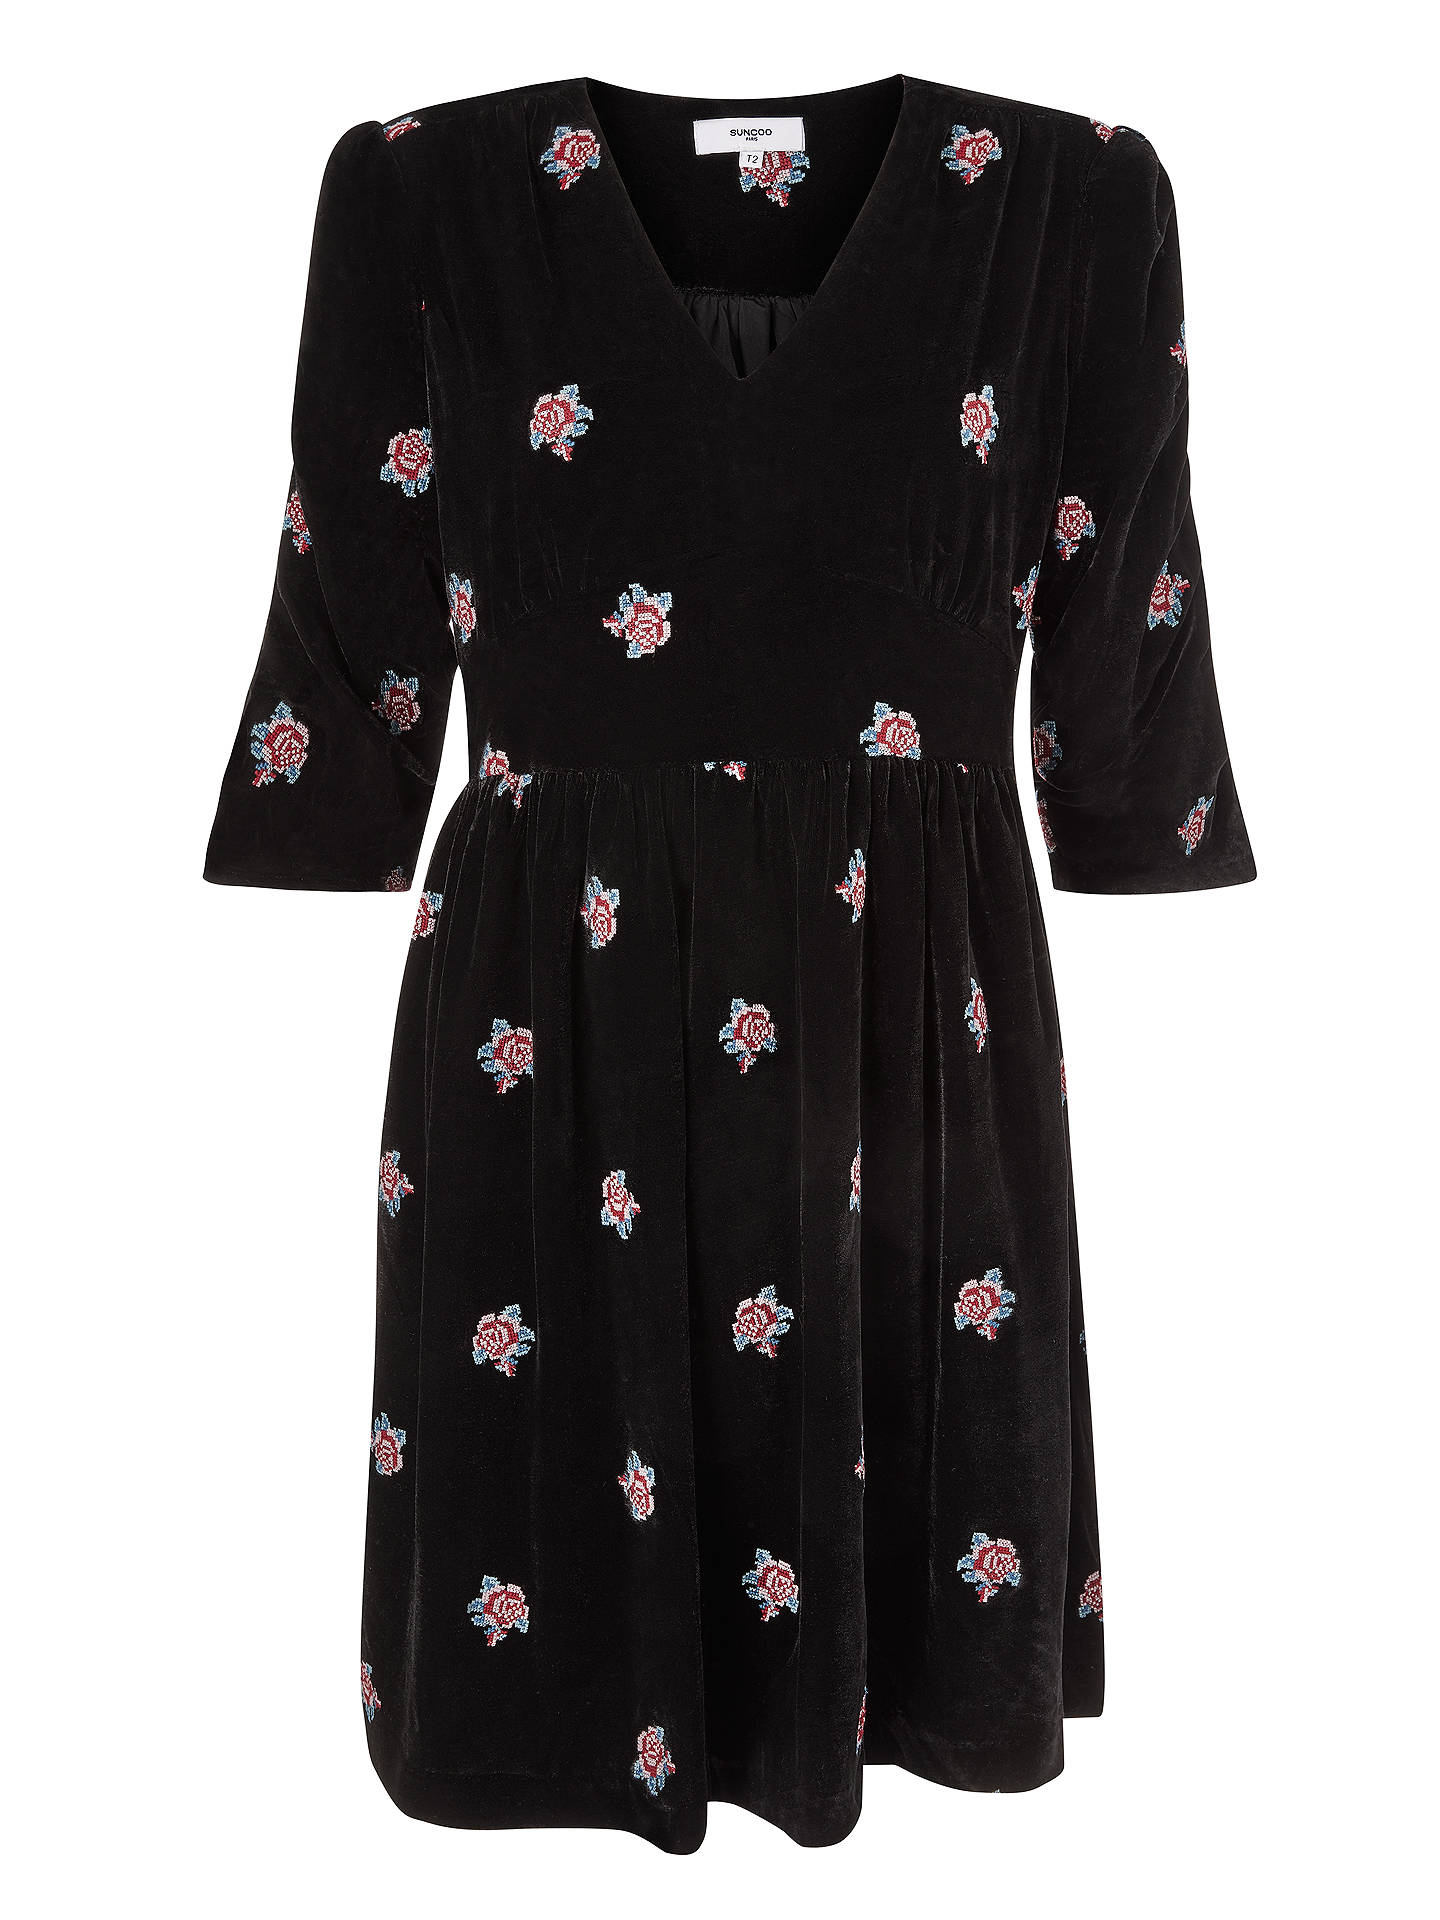 BuySUNCOO Clare Floral Velvet Dress, Noir, 6 Online at johnlewis.com